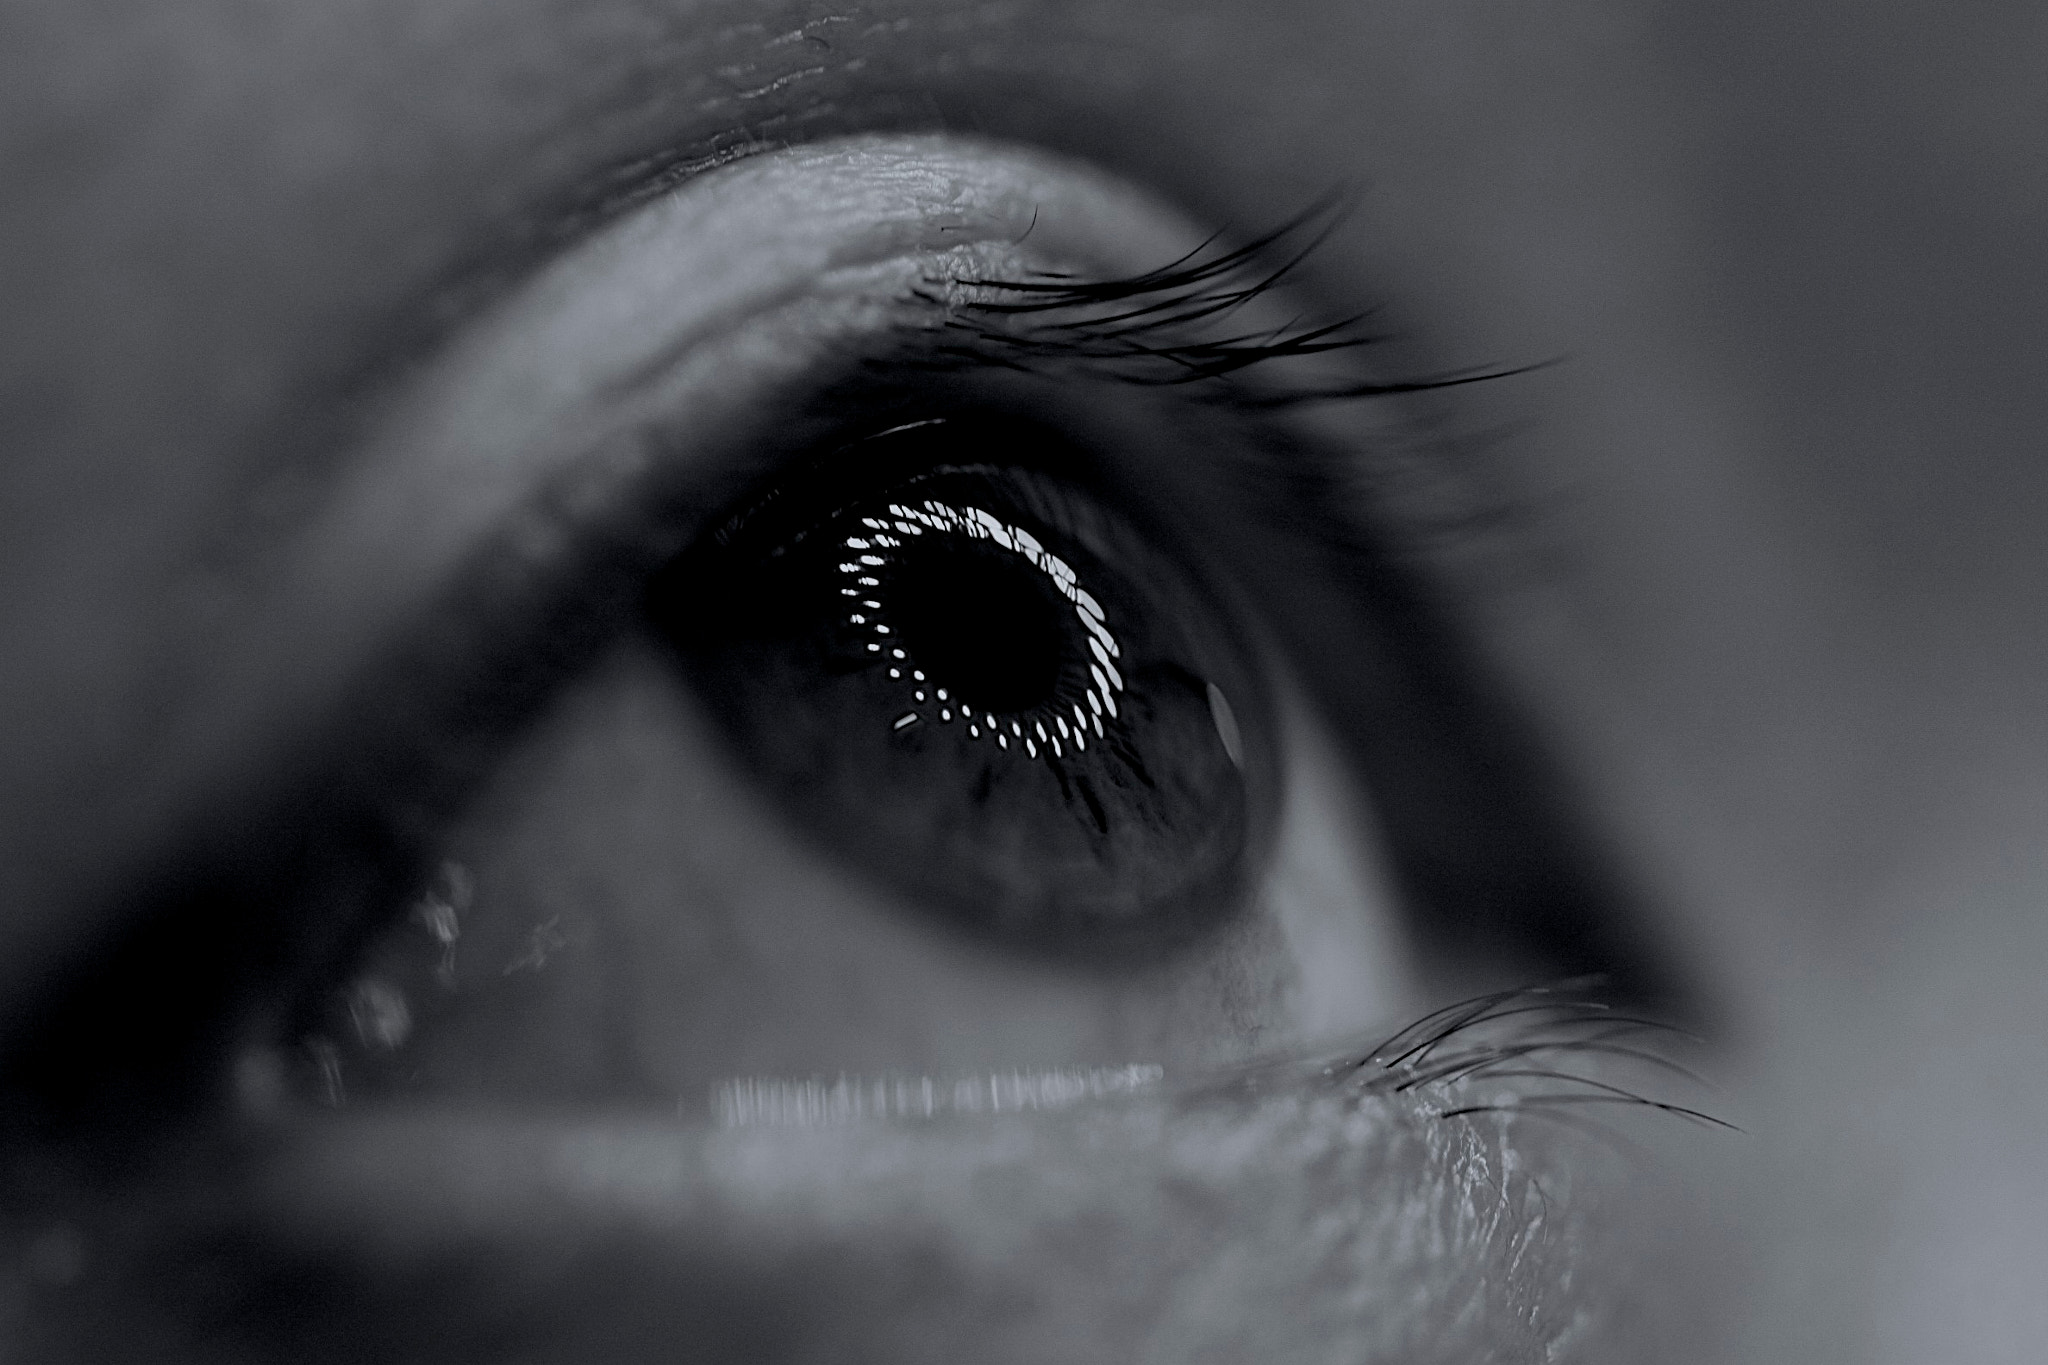 Photograph FOCUSING EYE by by  ad on 500px